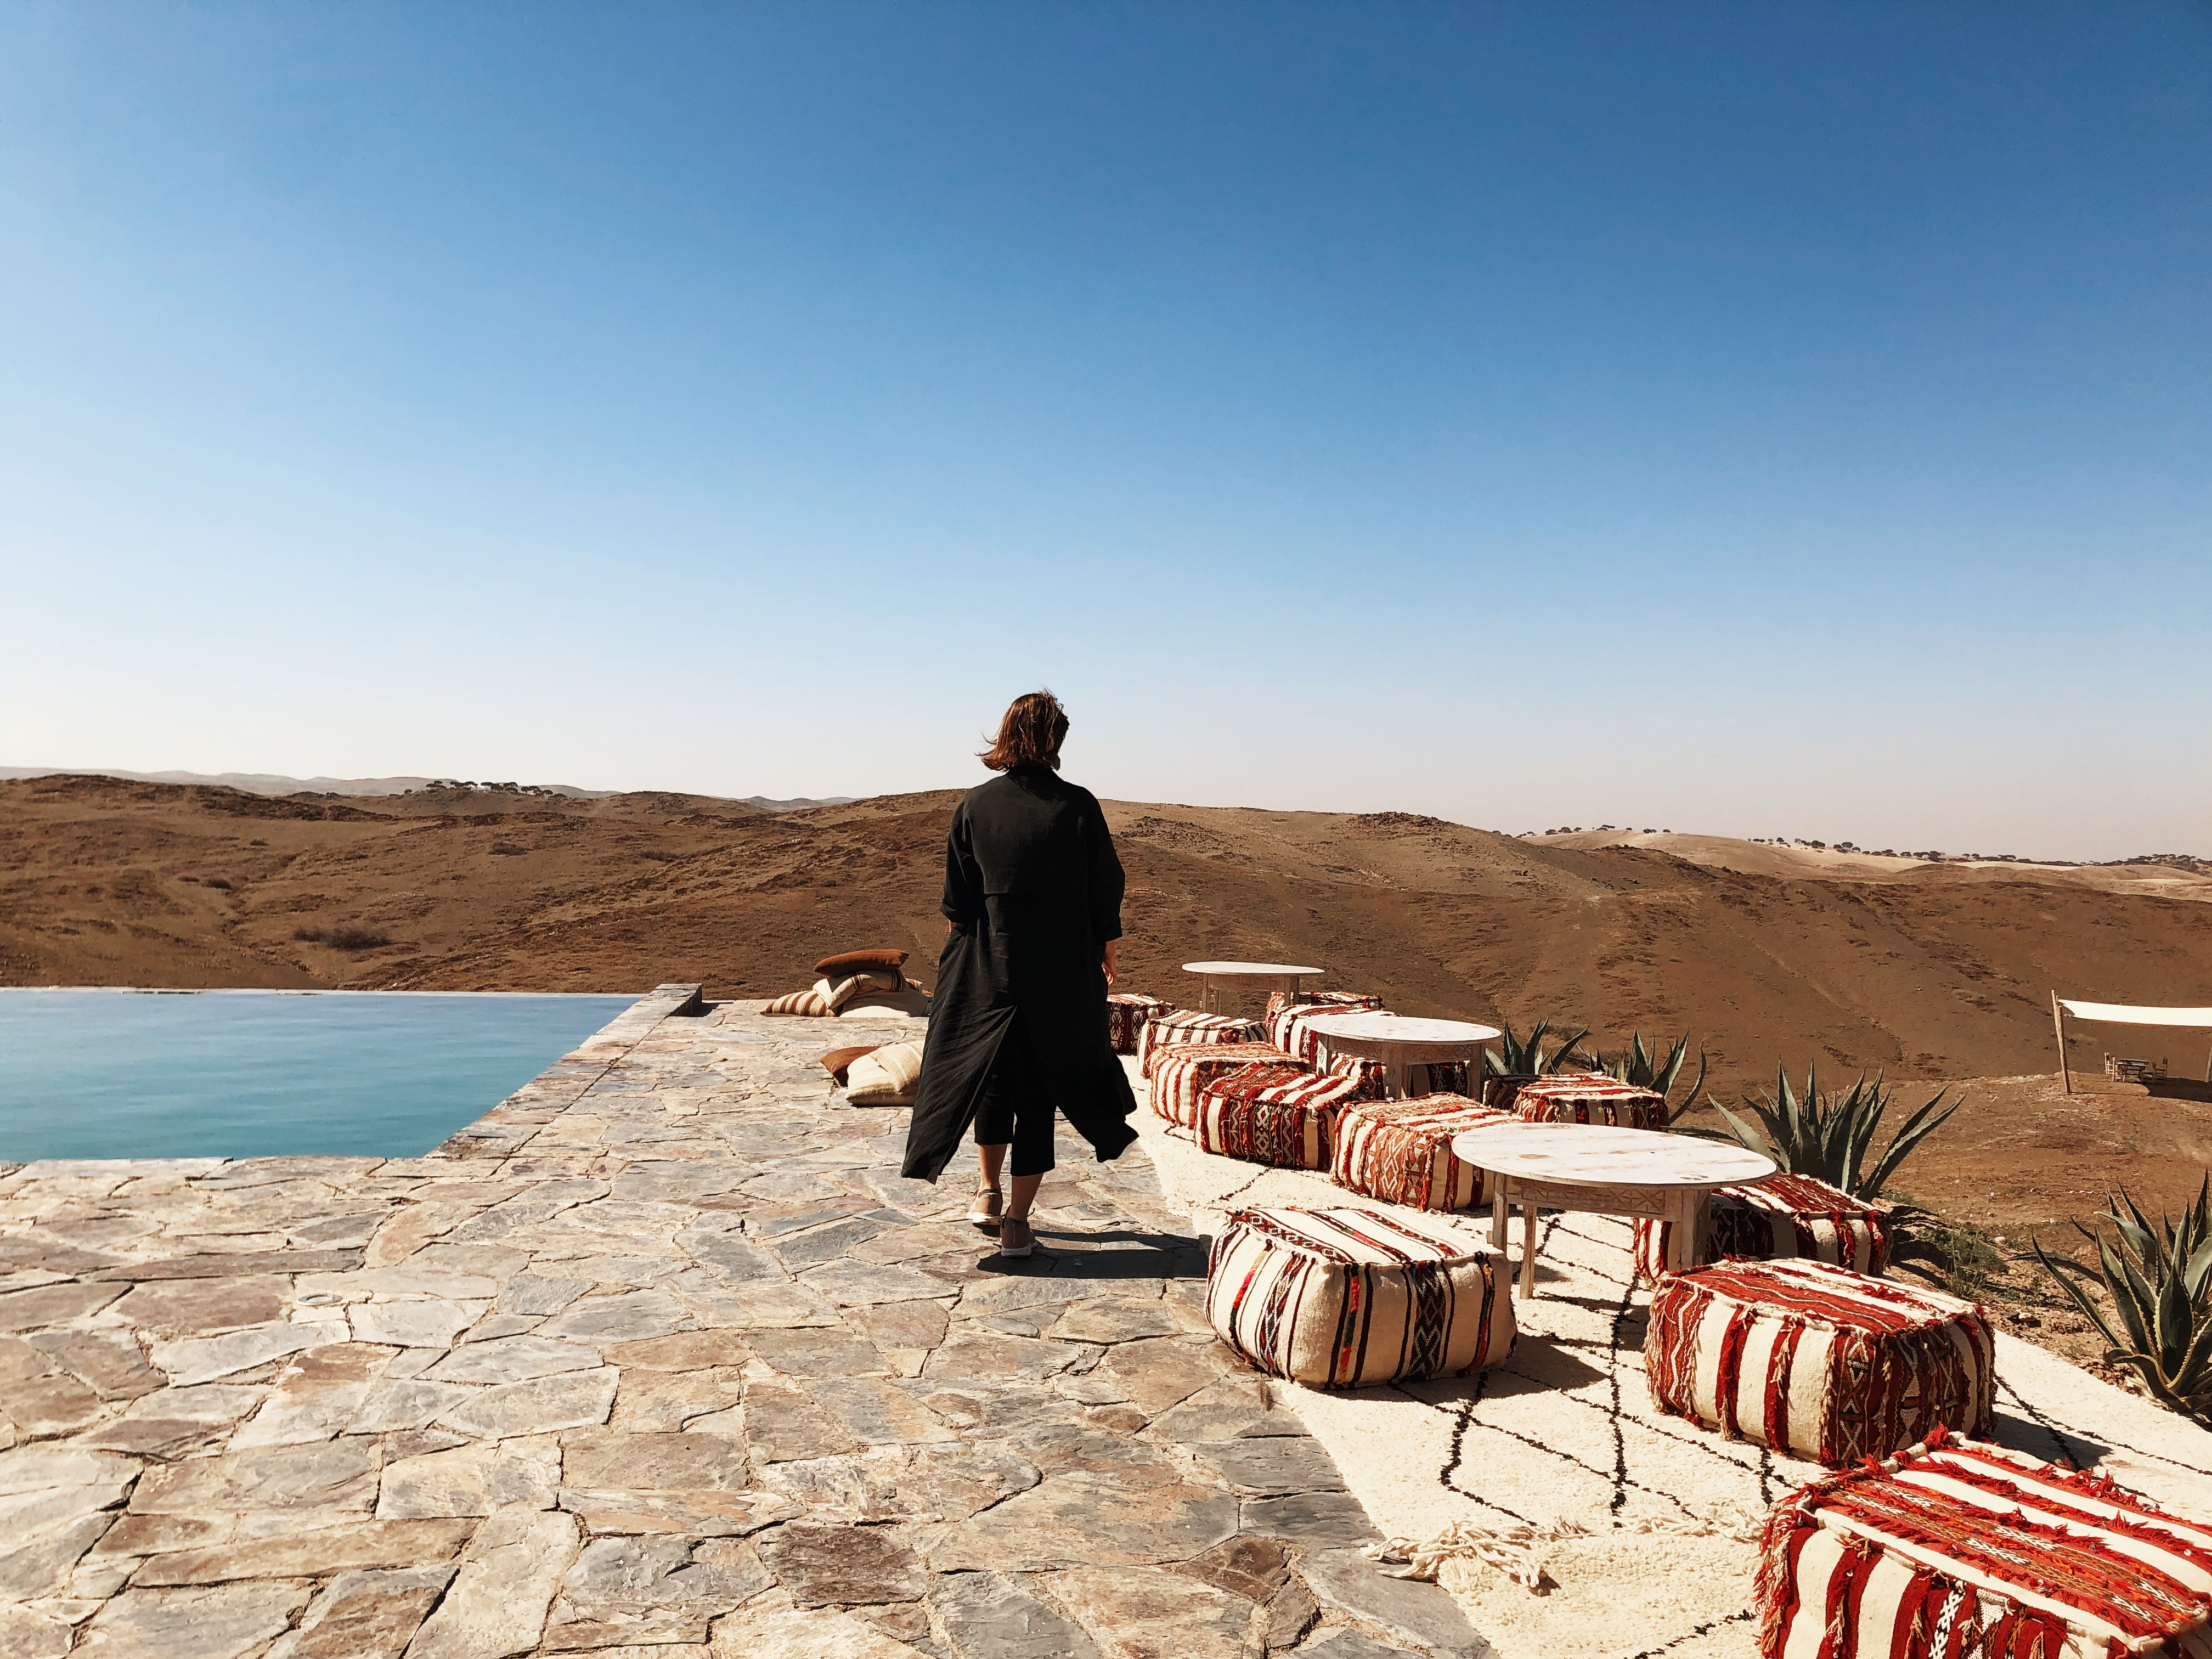 Luxury tented camp in Morocco: The White Camel